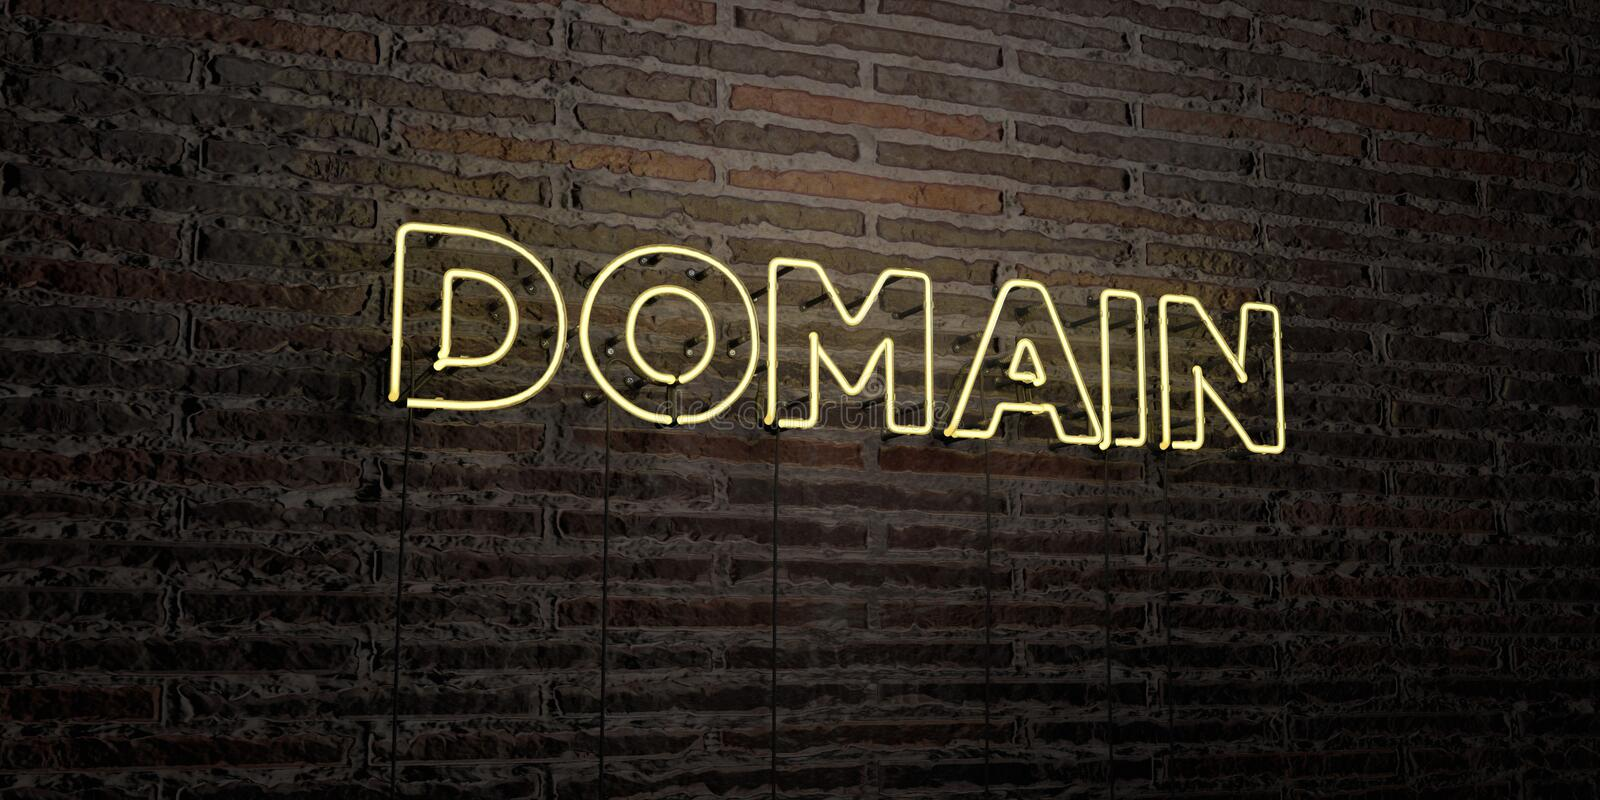 DOMAIN -Realistic Neon Sign on Brick Wall background - 3D rendered royalty free stock image royalty free illustration